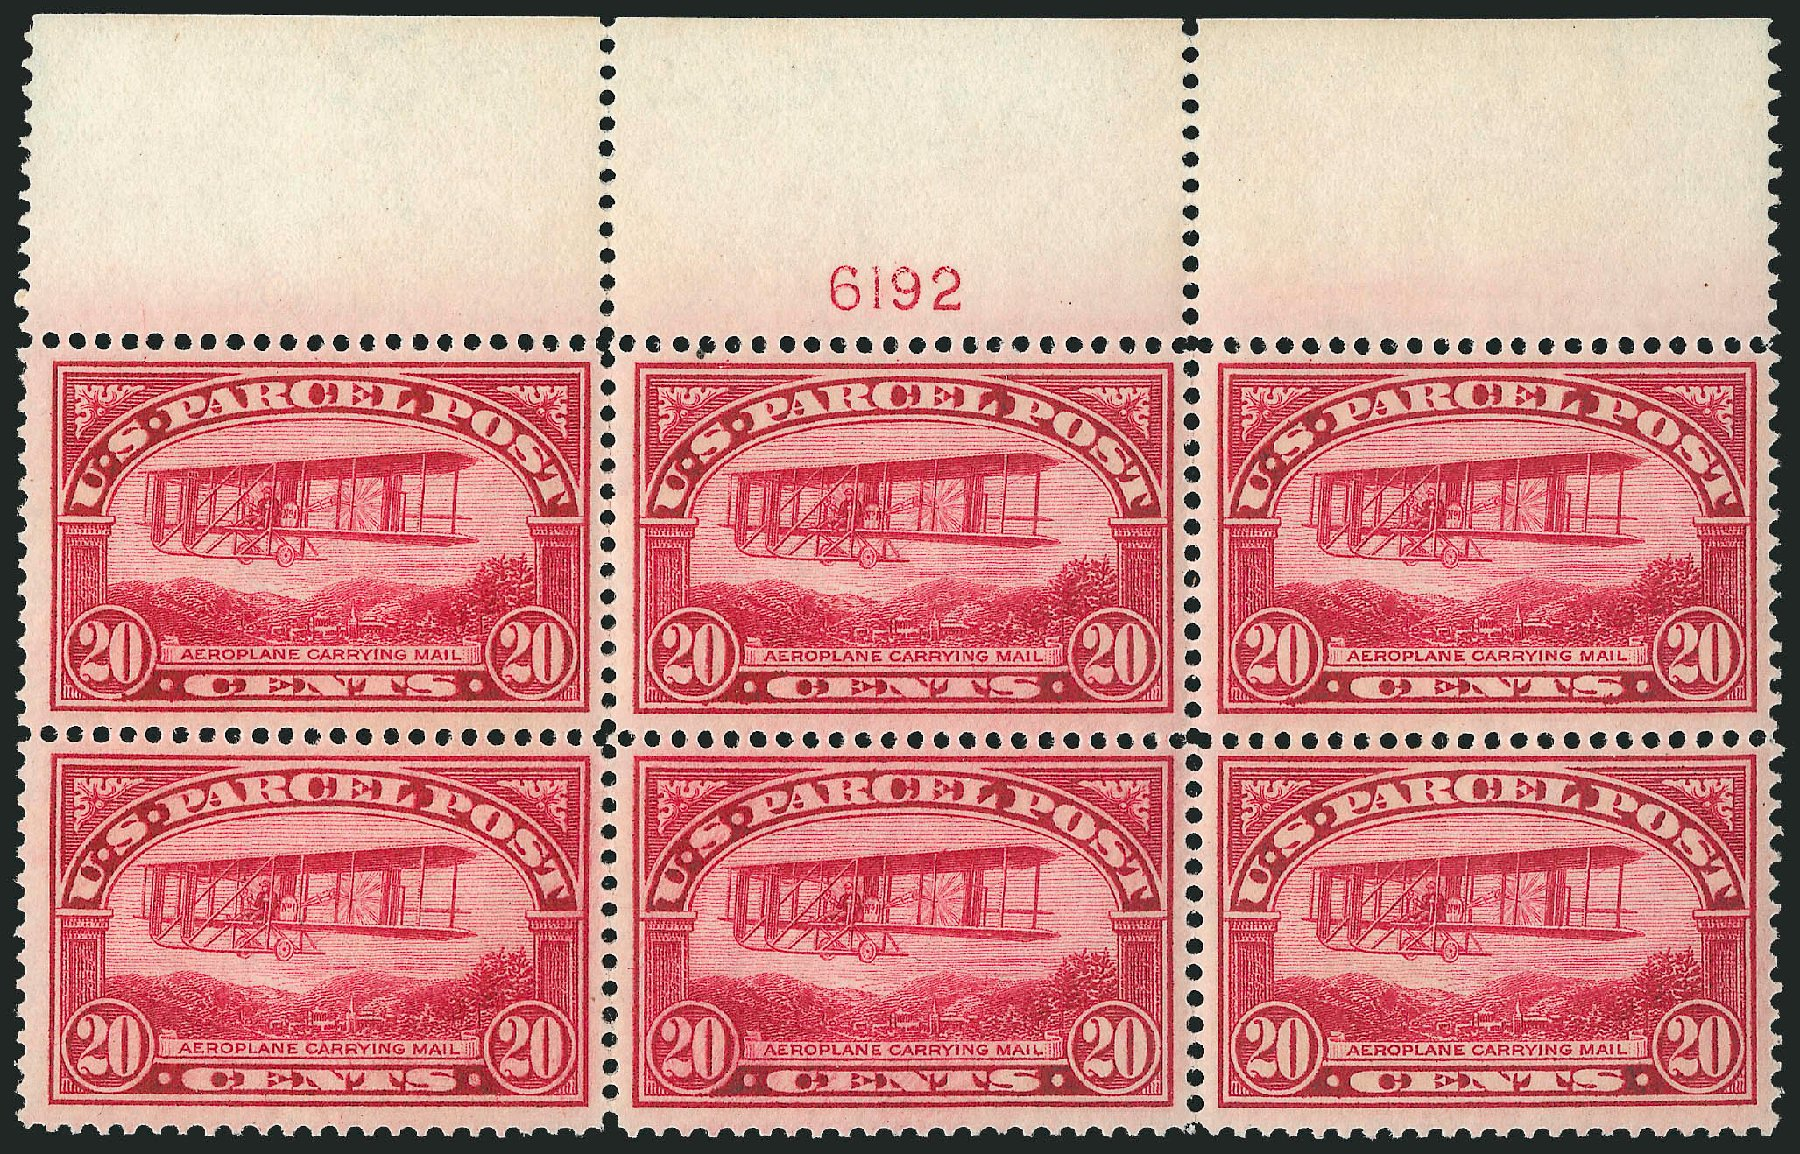 Image result for 1913 stamps